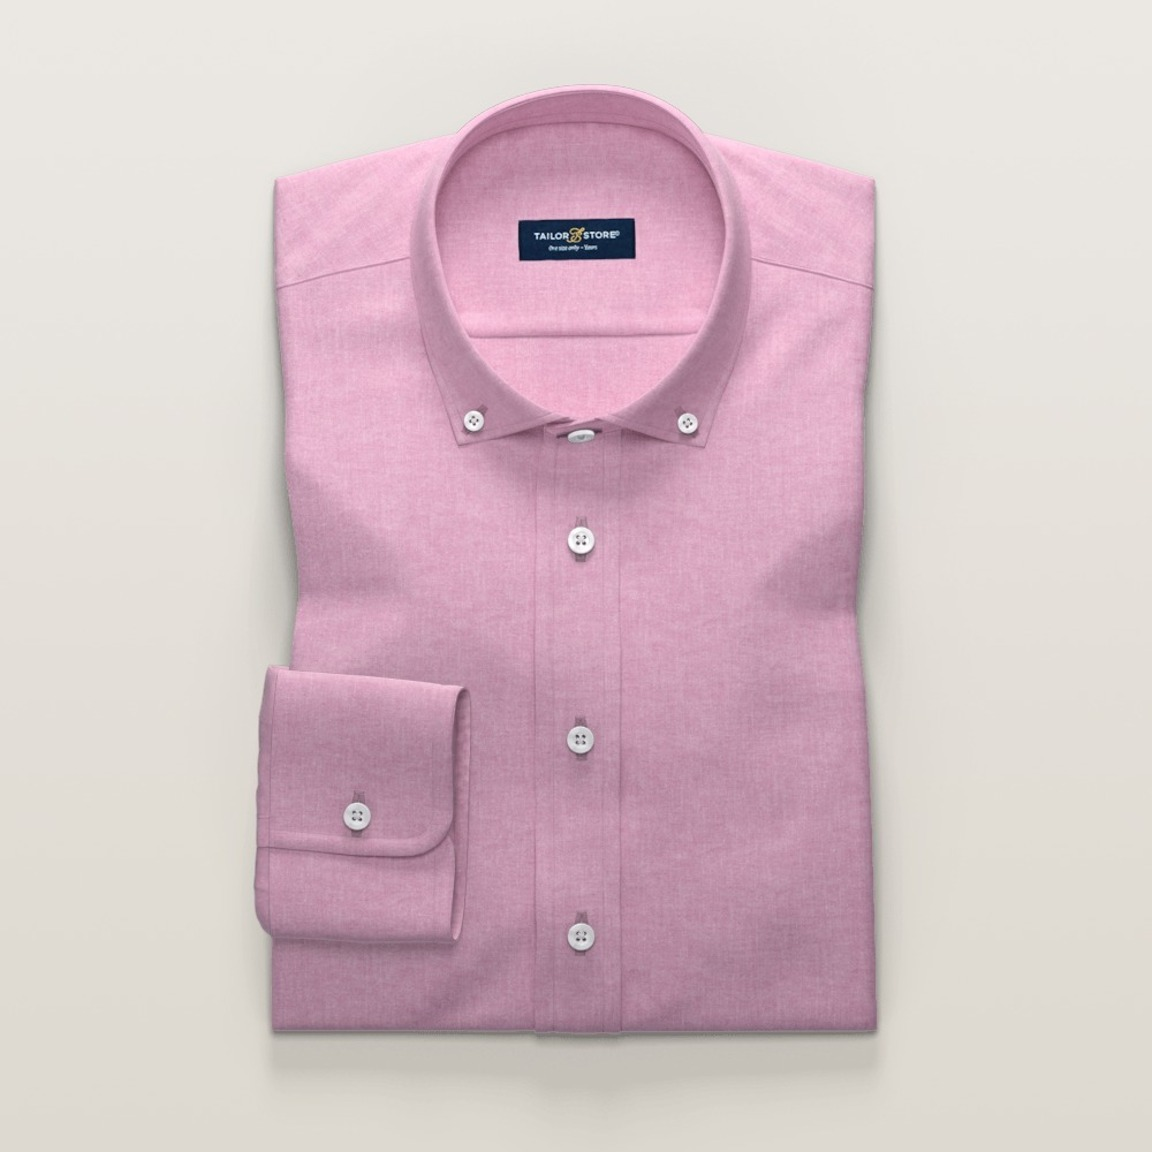 Ladies' dress shirt in pink cotton/linen